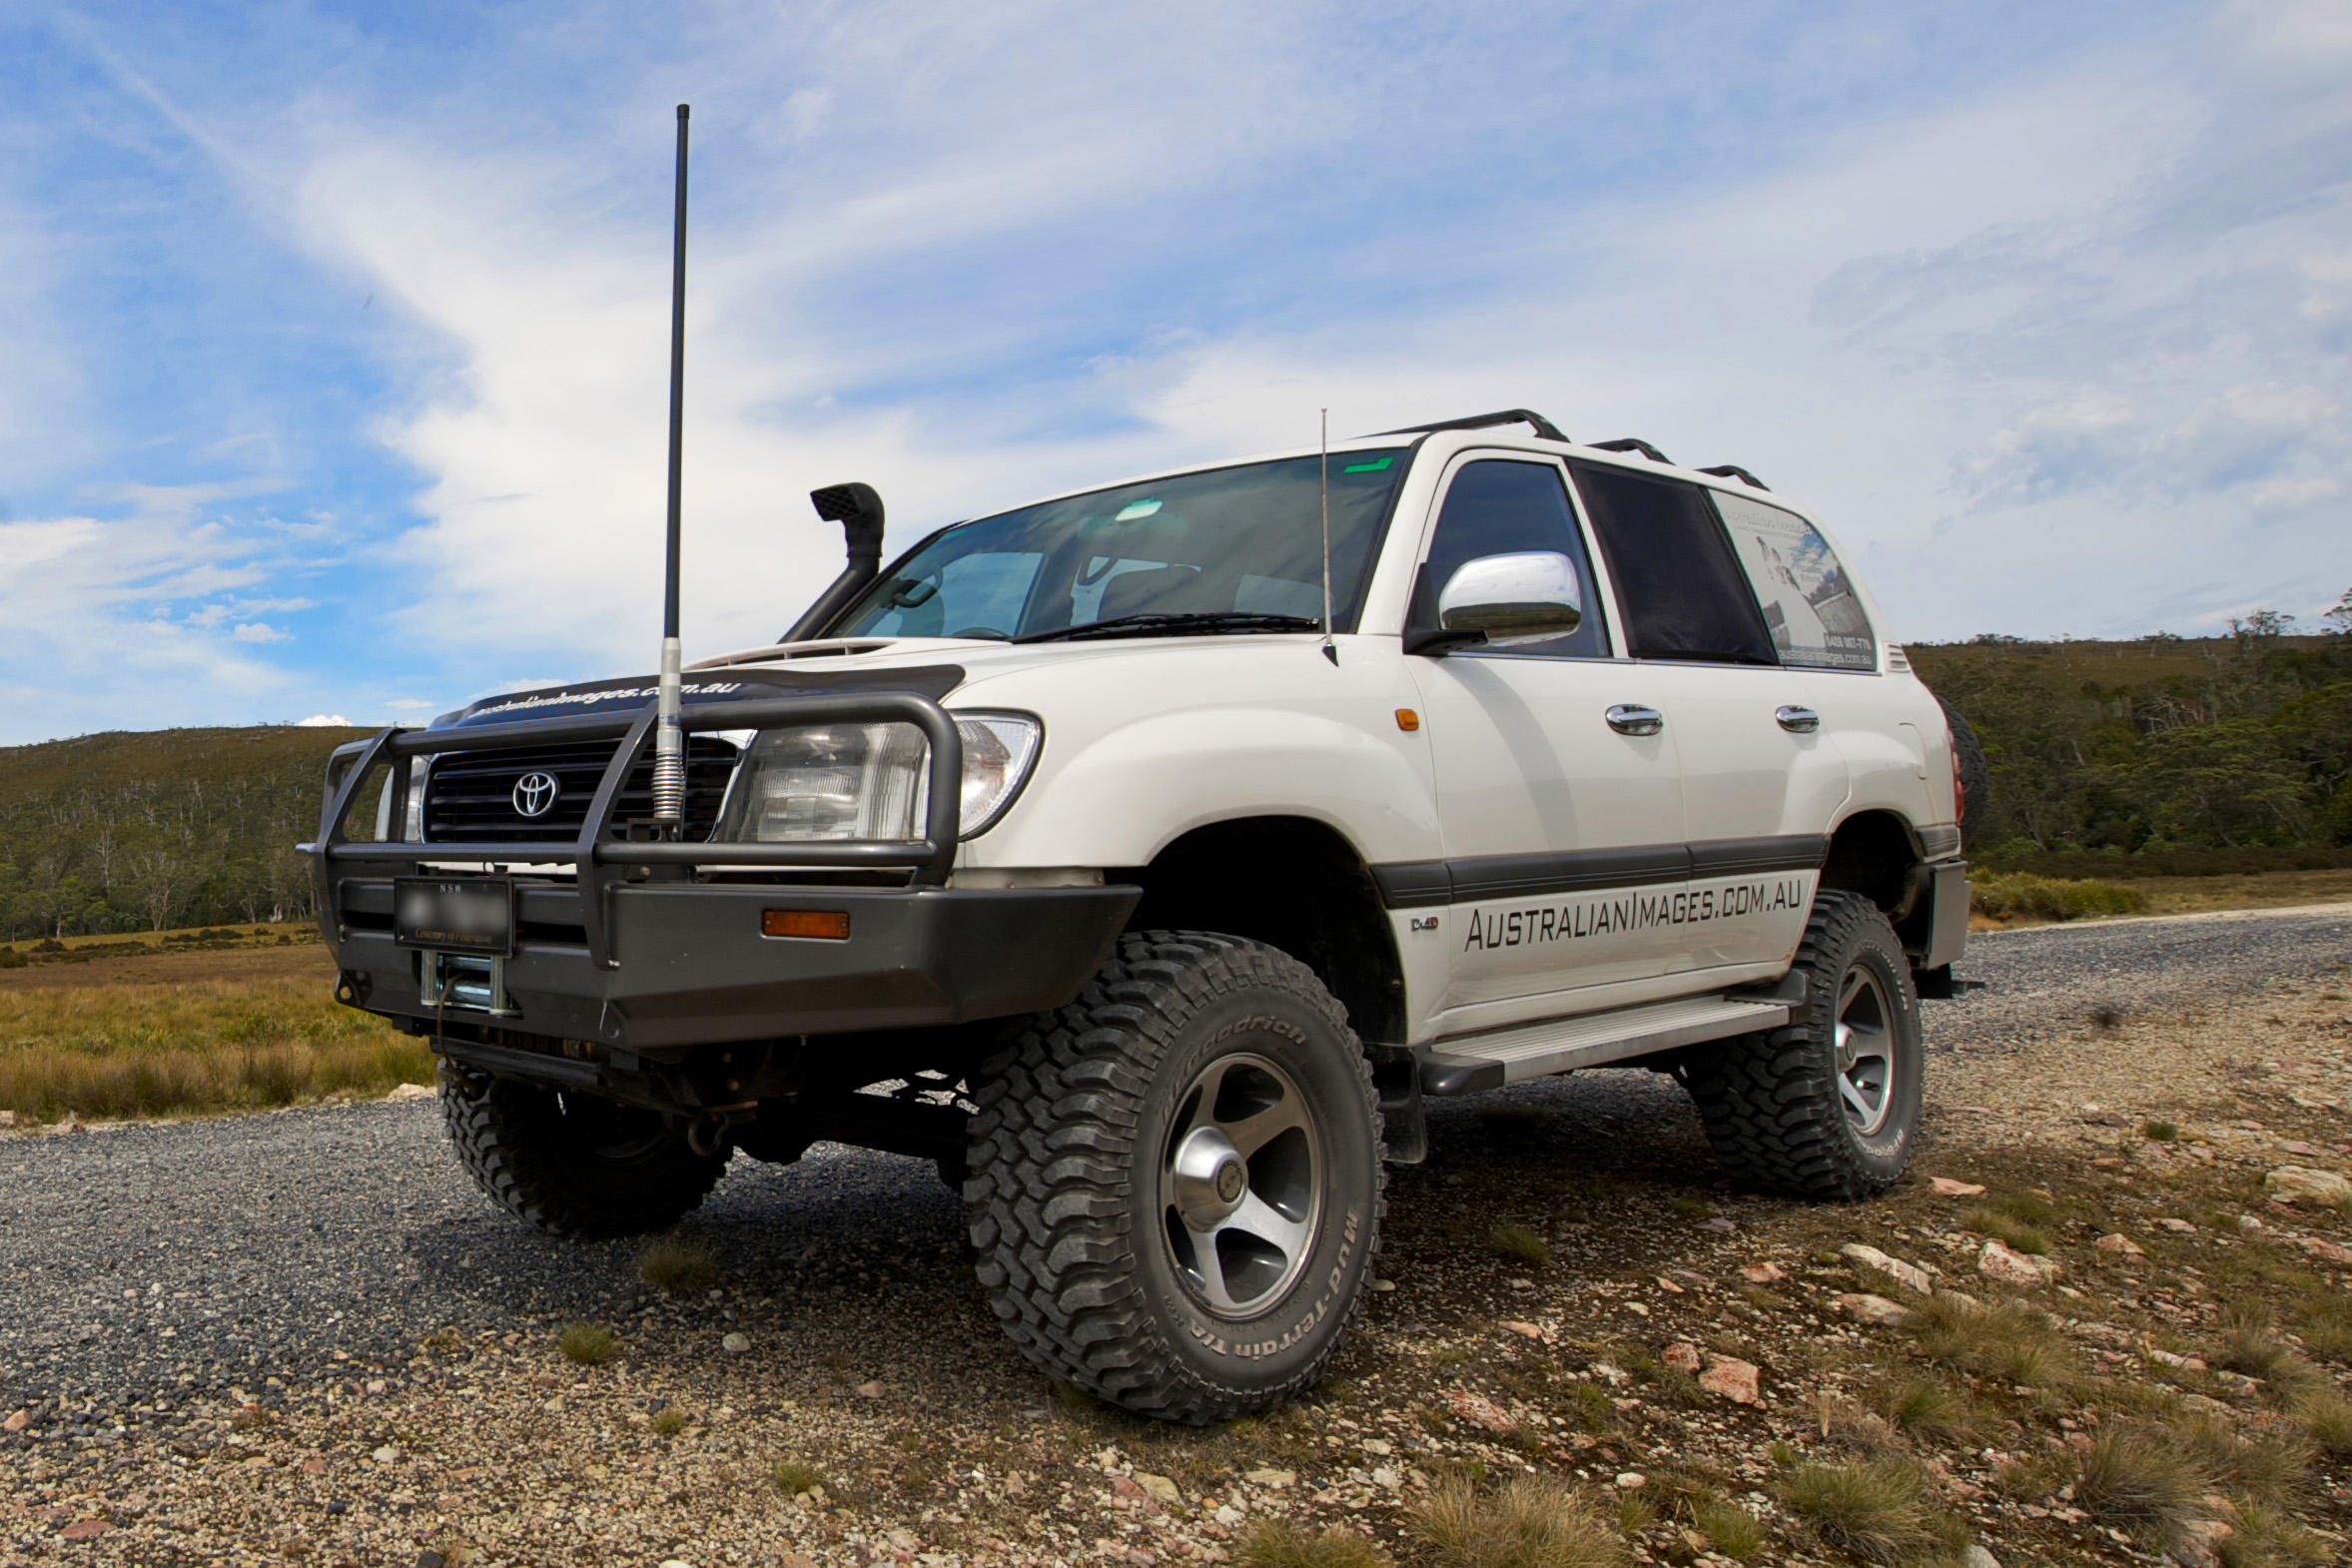 Toyota Land Cruiser 105 - overview, features, specifications and reviews 19